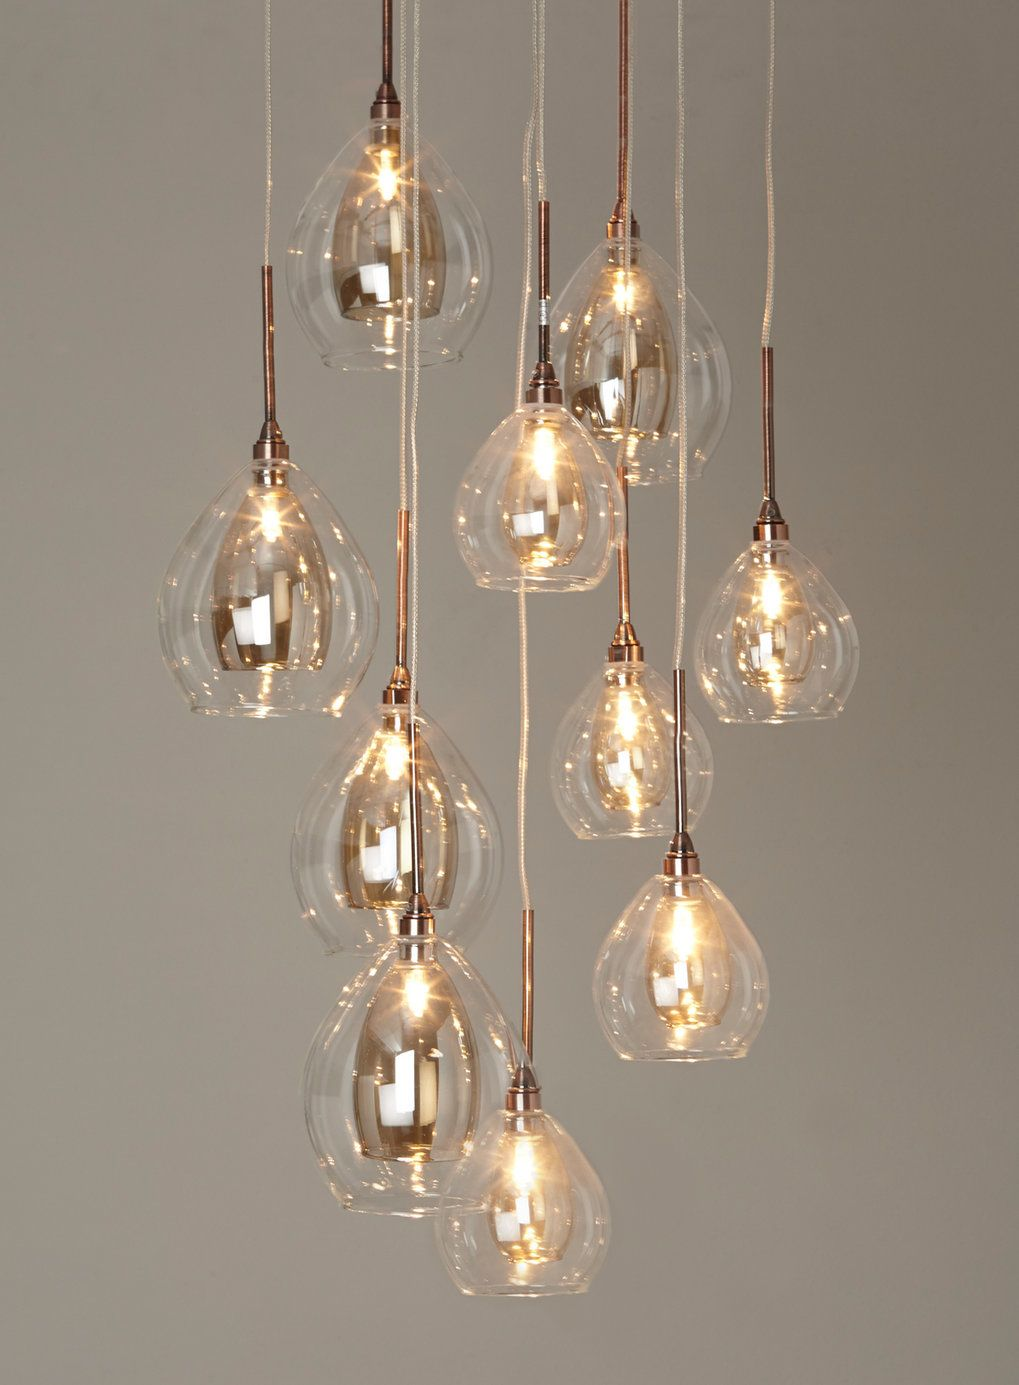 Carmella 10 light cluster bhs pendant over the kitchen island